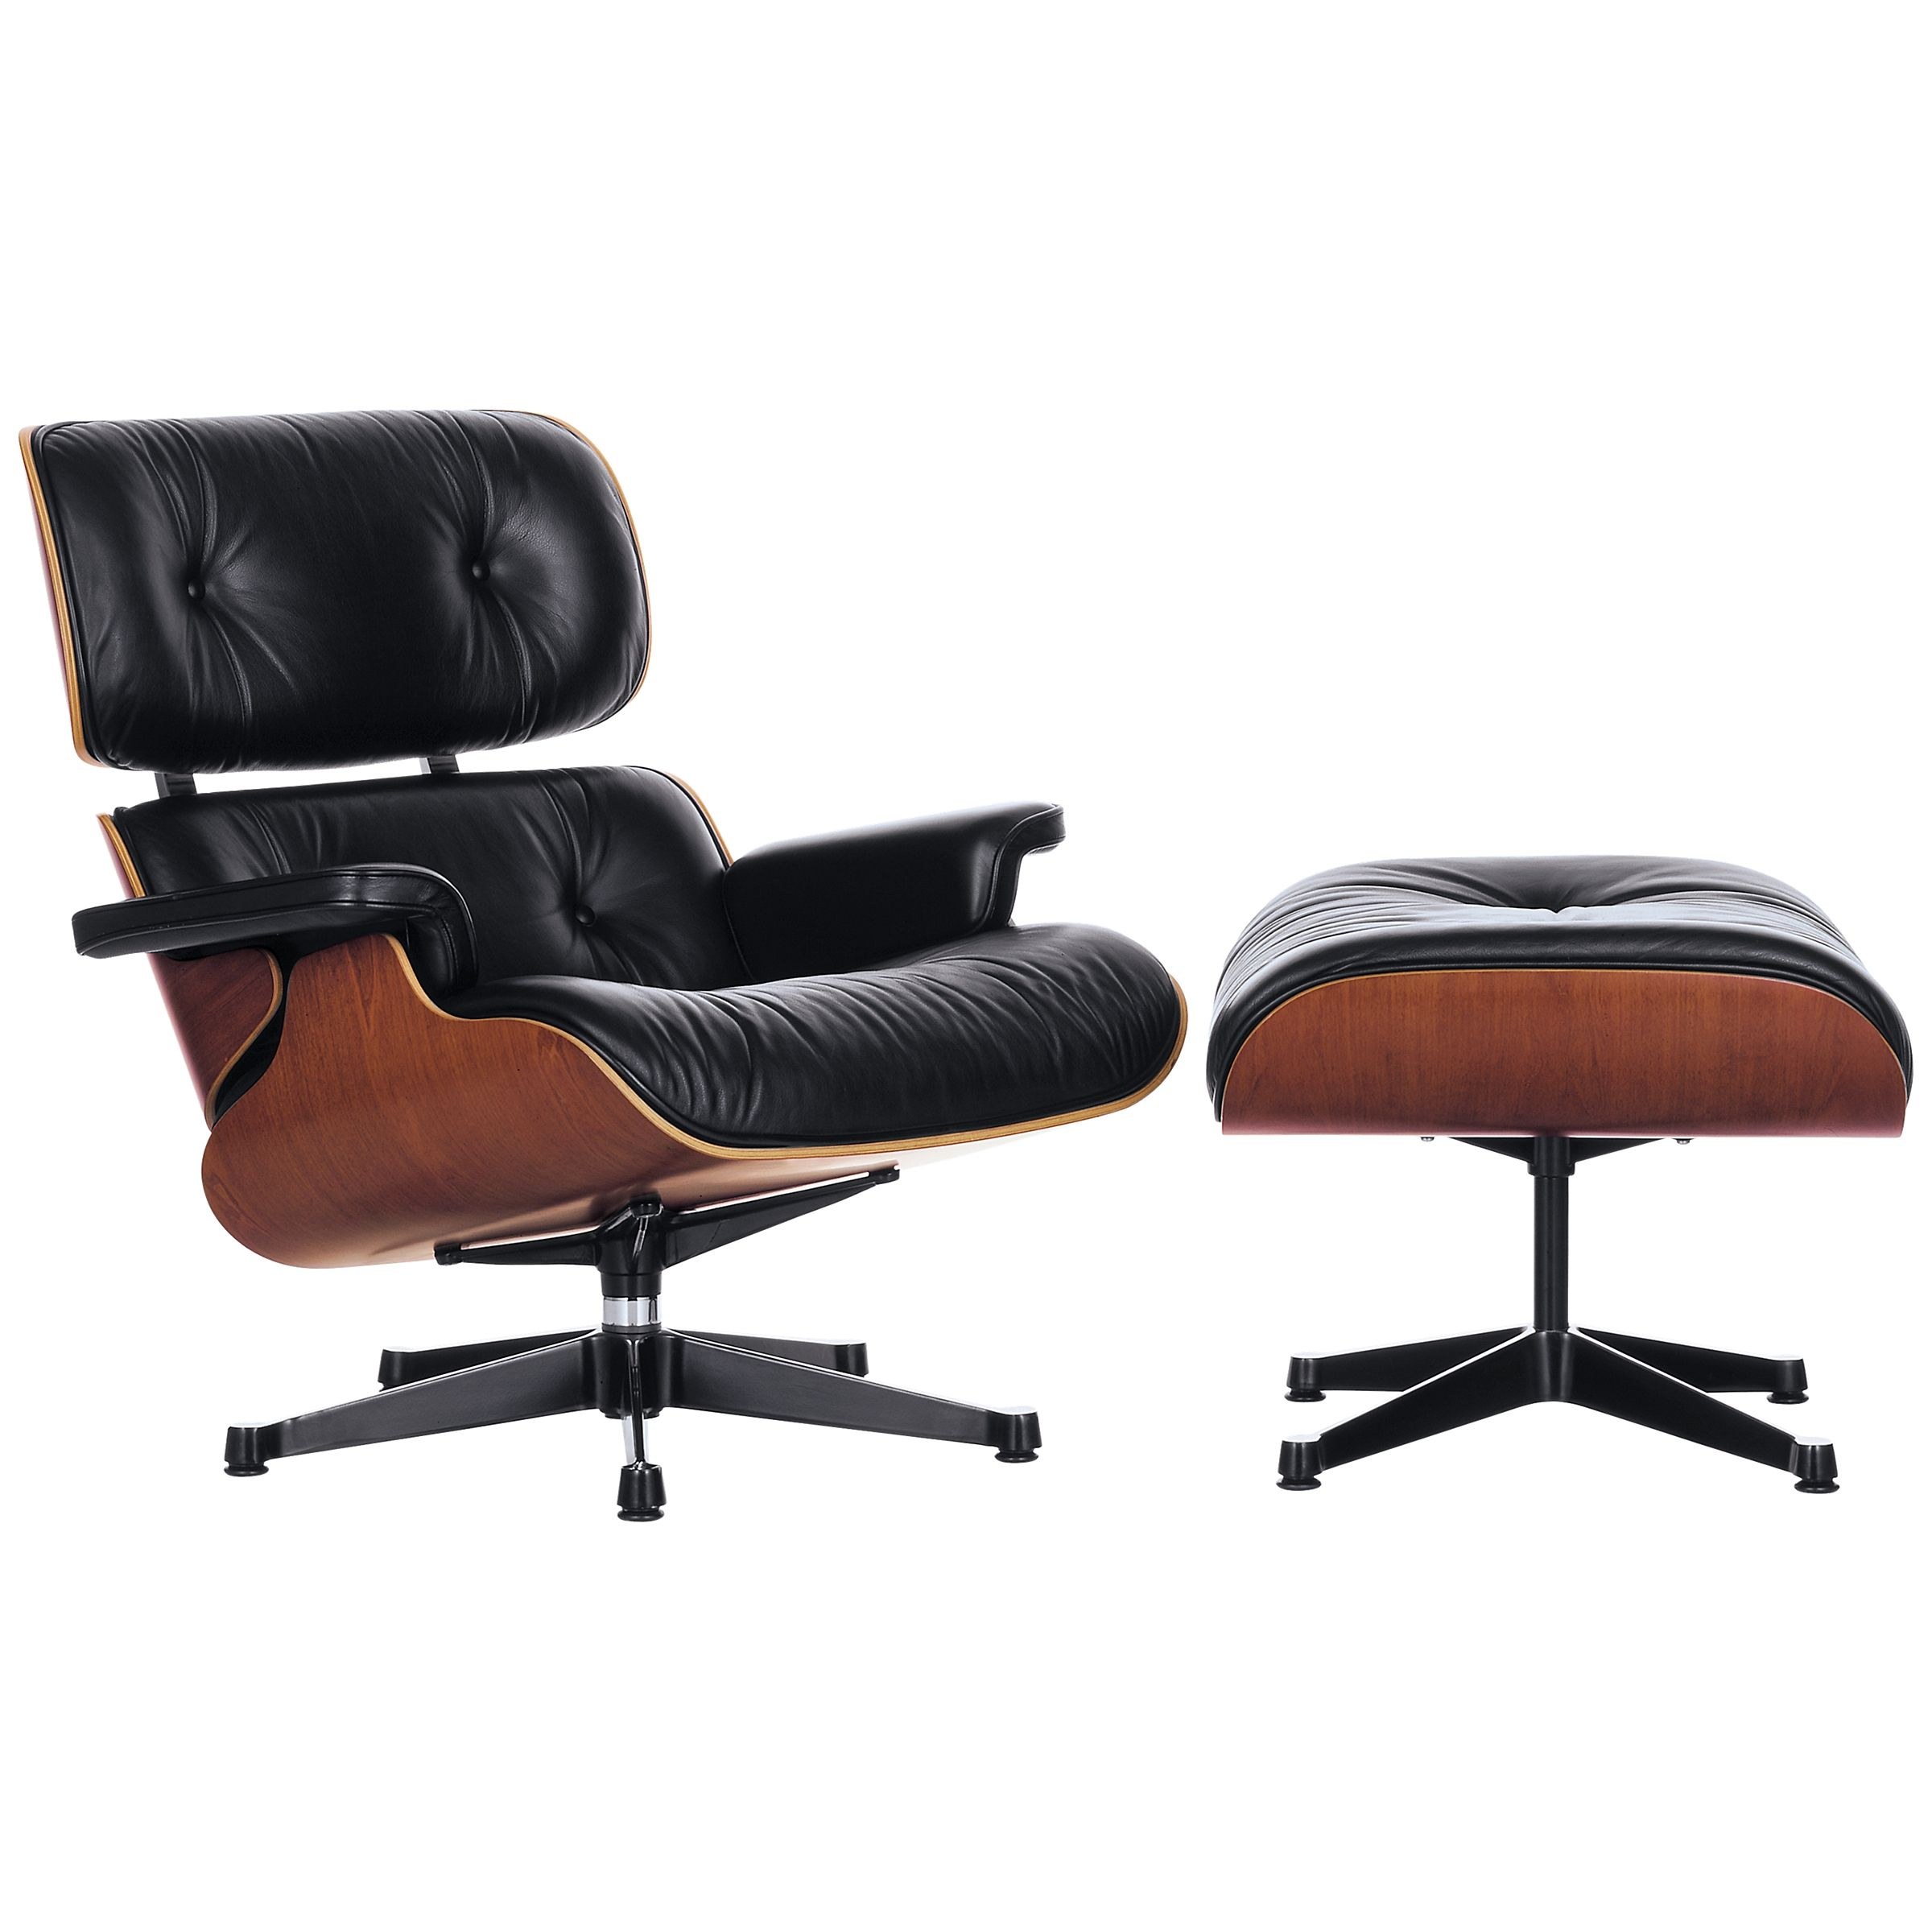 Vitra Vitra Eames Large Leather Lounge Chair and Ottoman, Black/Palisander